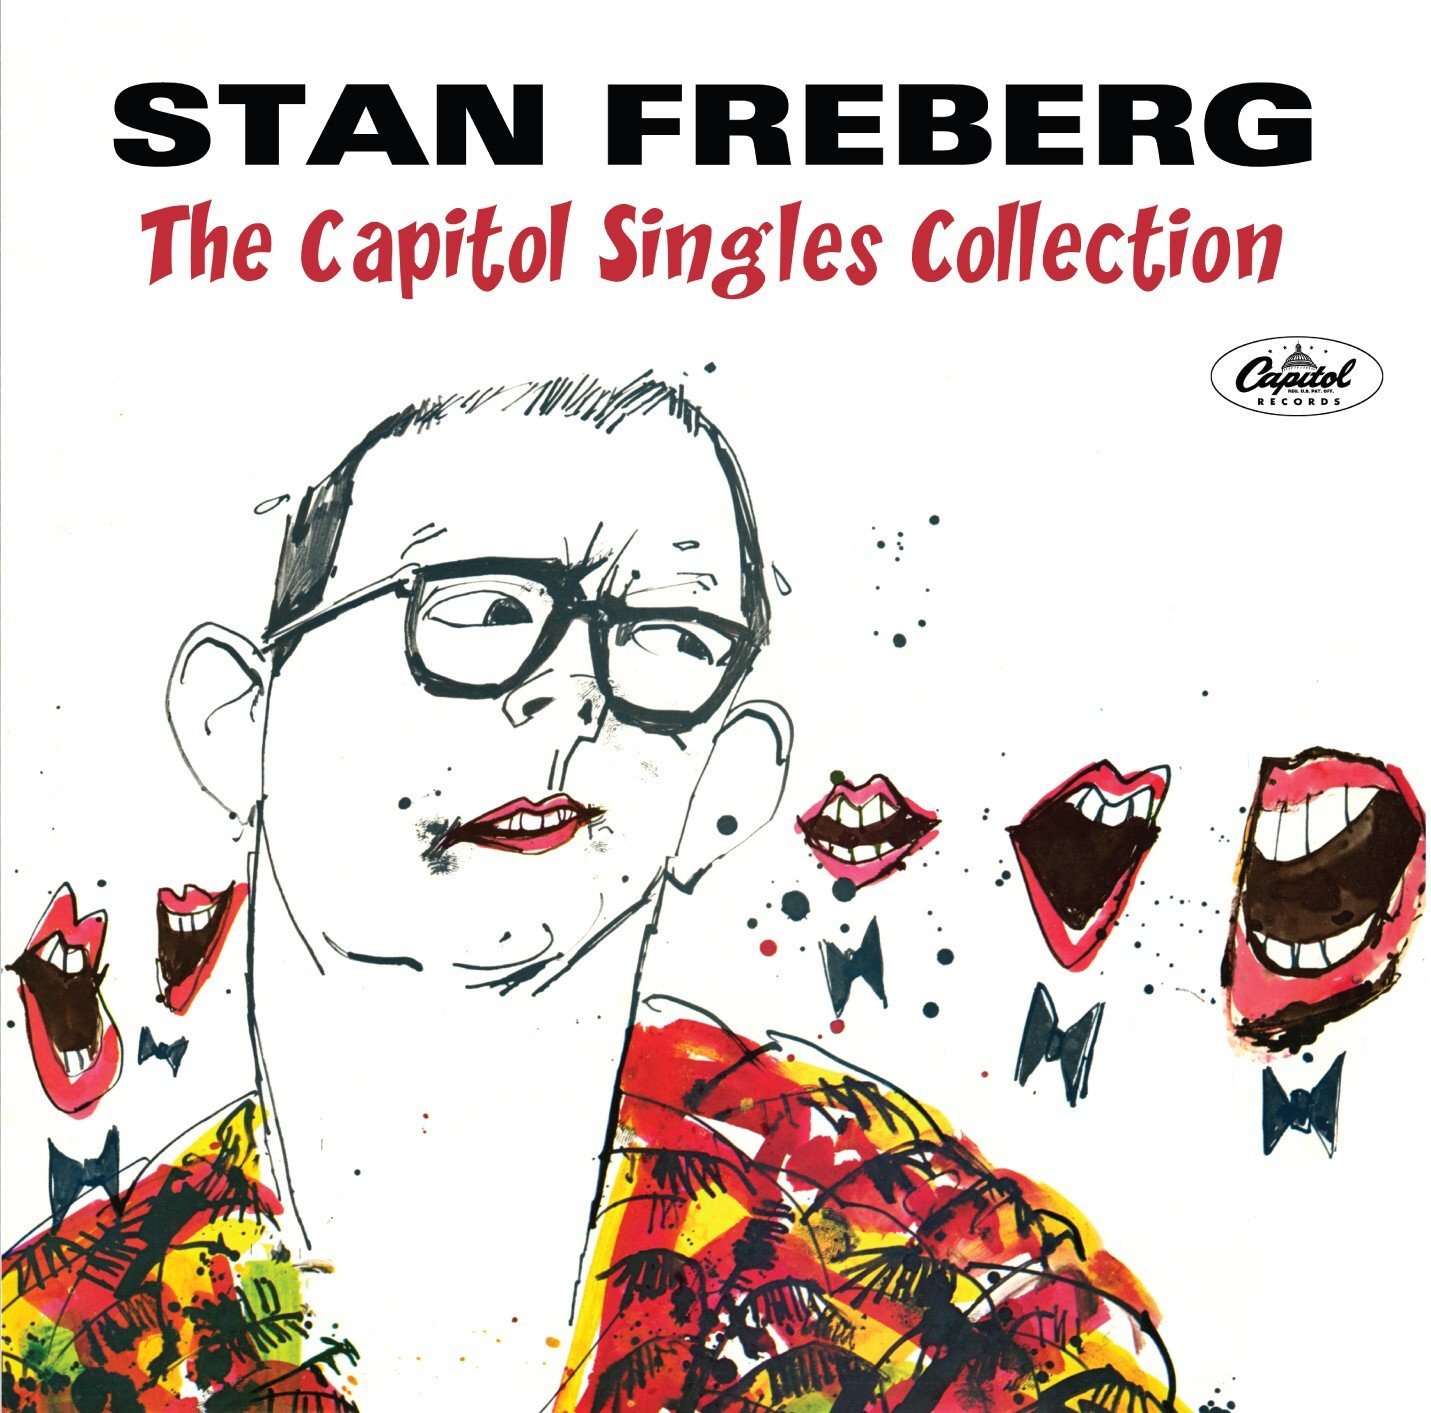 Capitol Singles Collection                                                                                                                                                                                                                                                                                                                                                                                                <span class=